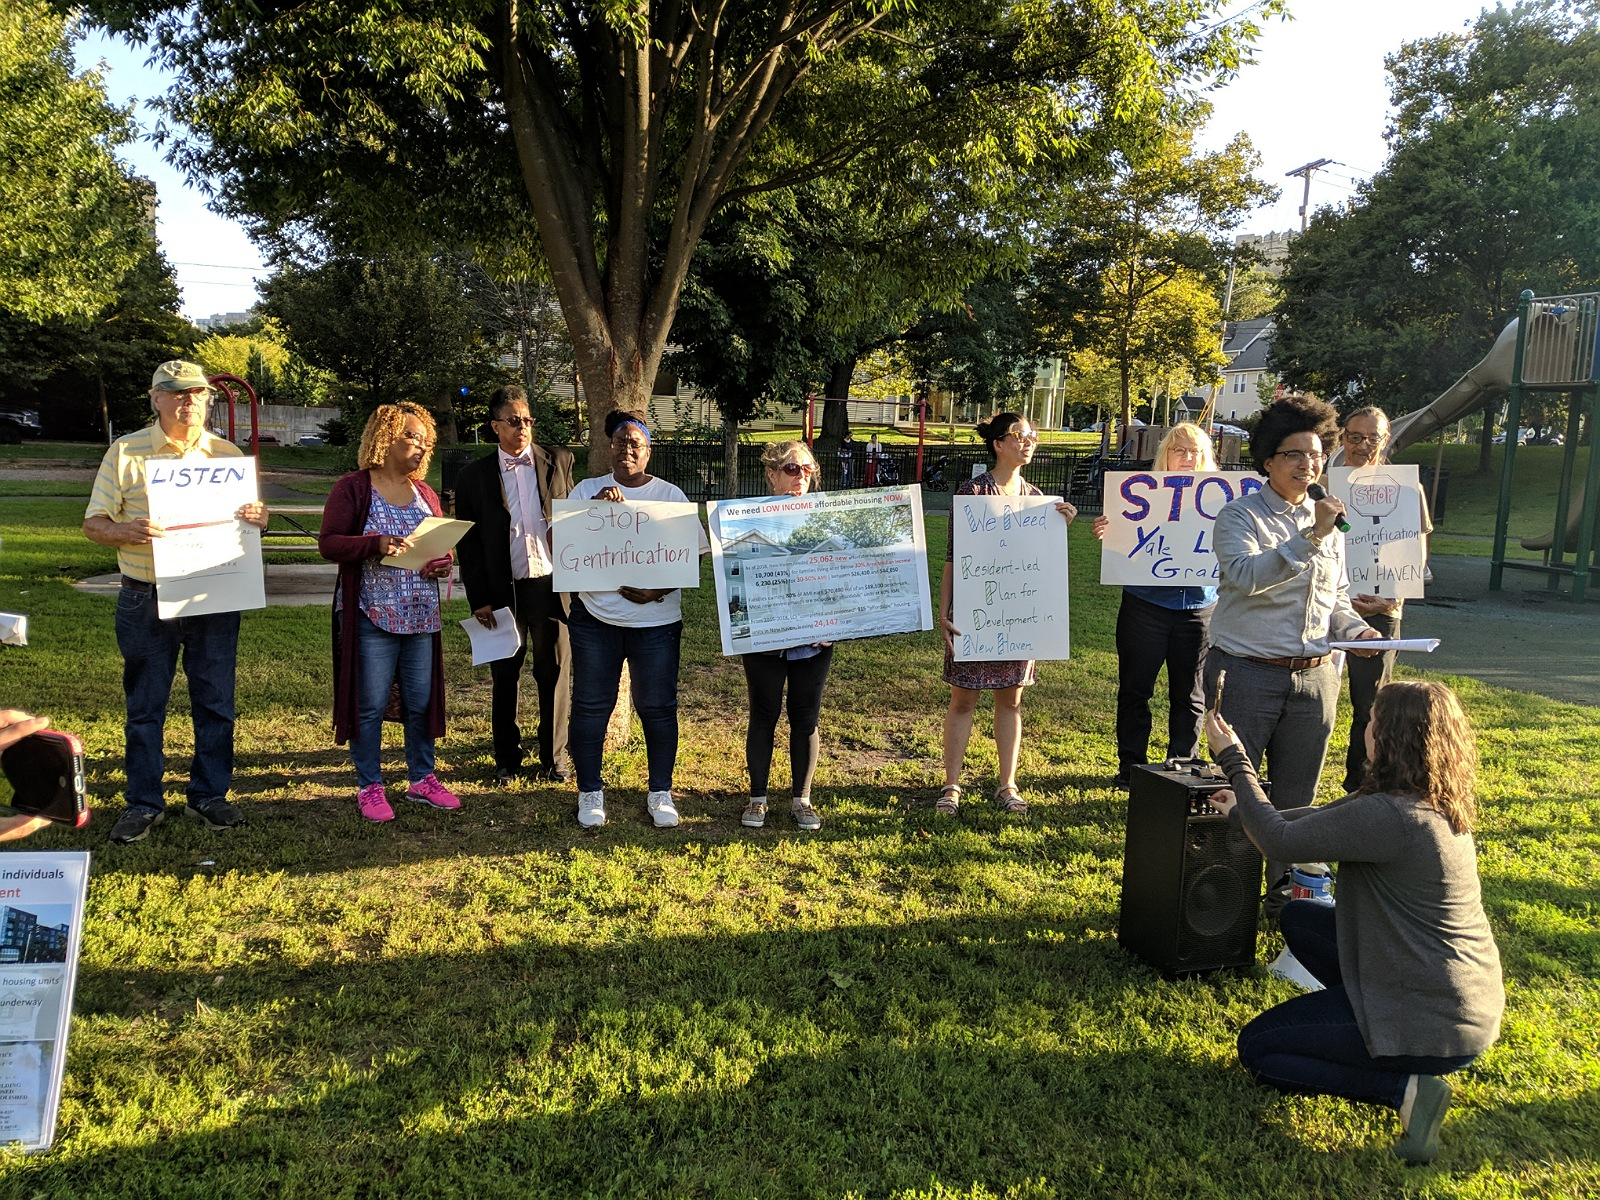 New Haven activists organize vs. regressive lead safety law, new rezoning, urban development efforts